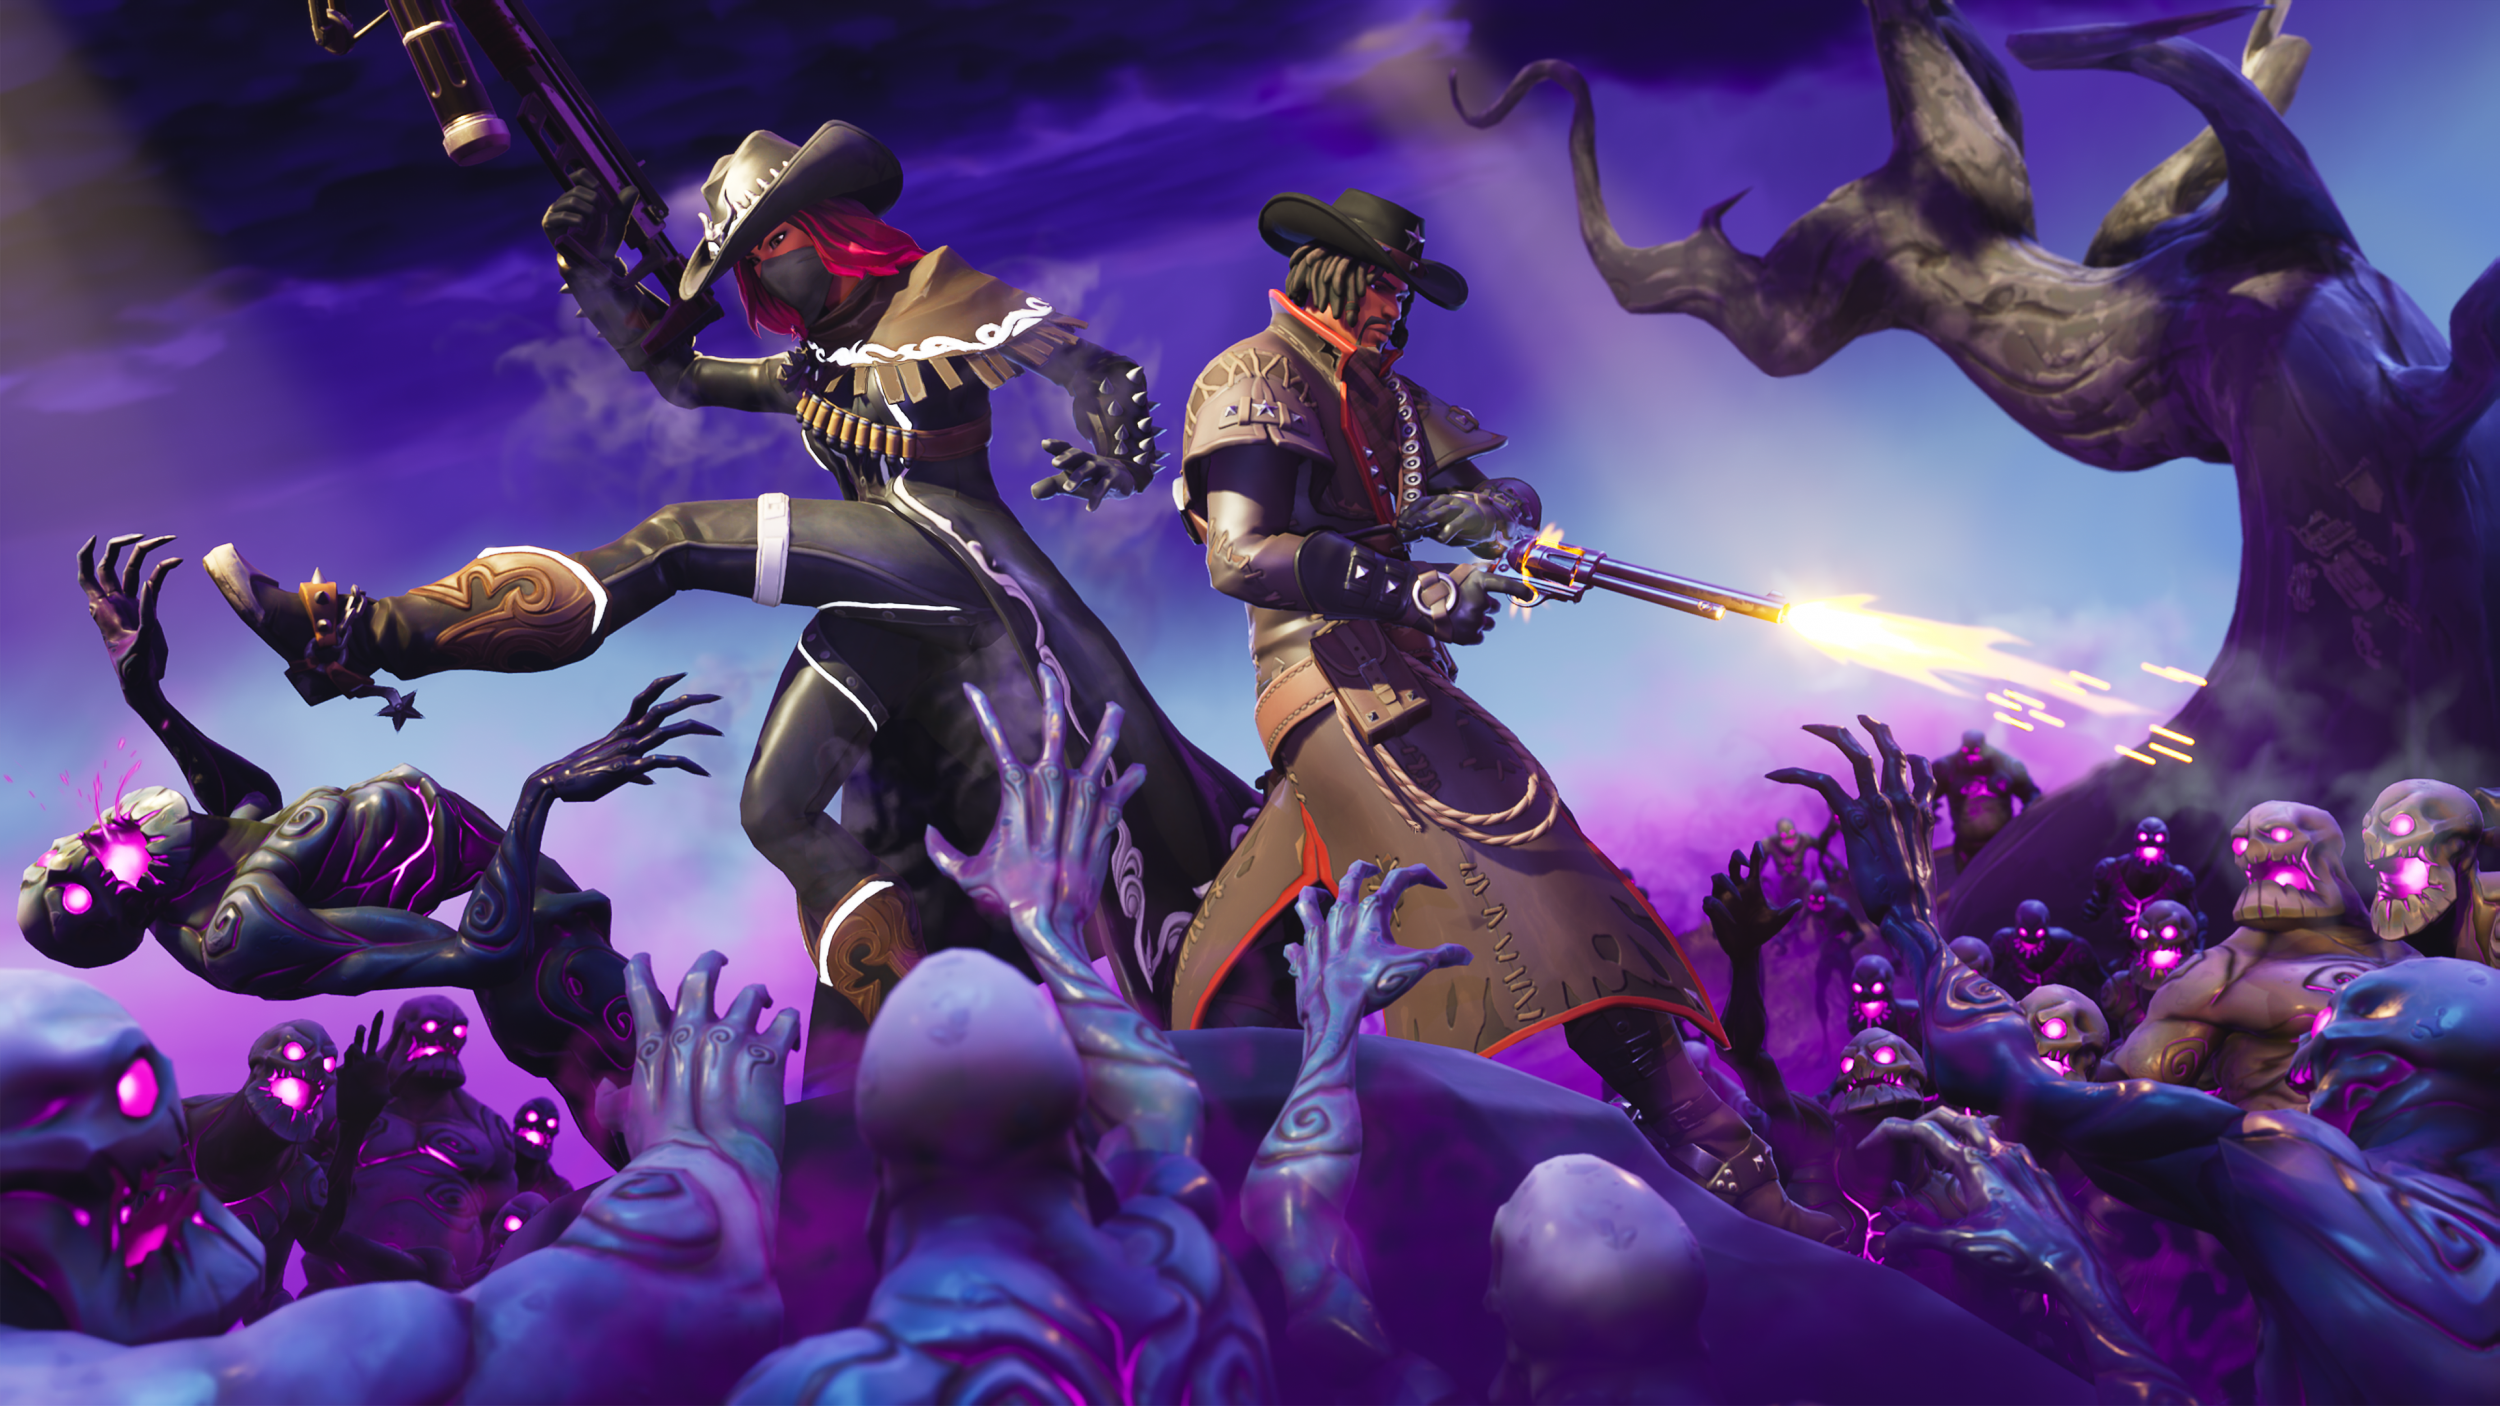 fortnite update 8 20 adds poison trap coconuts floor is lava patch notes - fortnite deleted itself